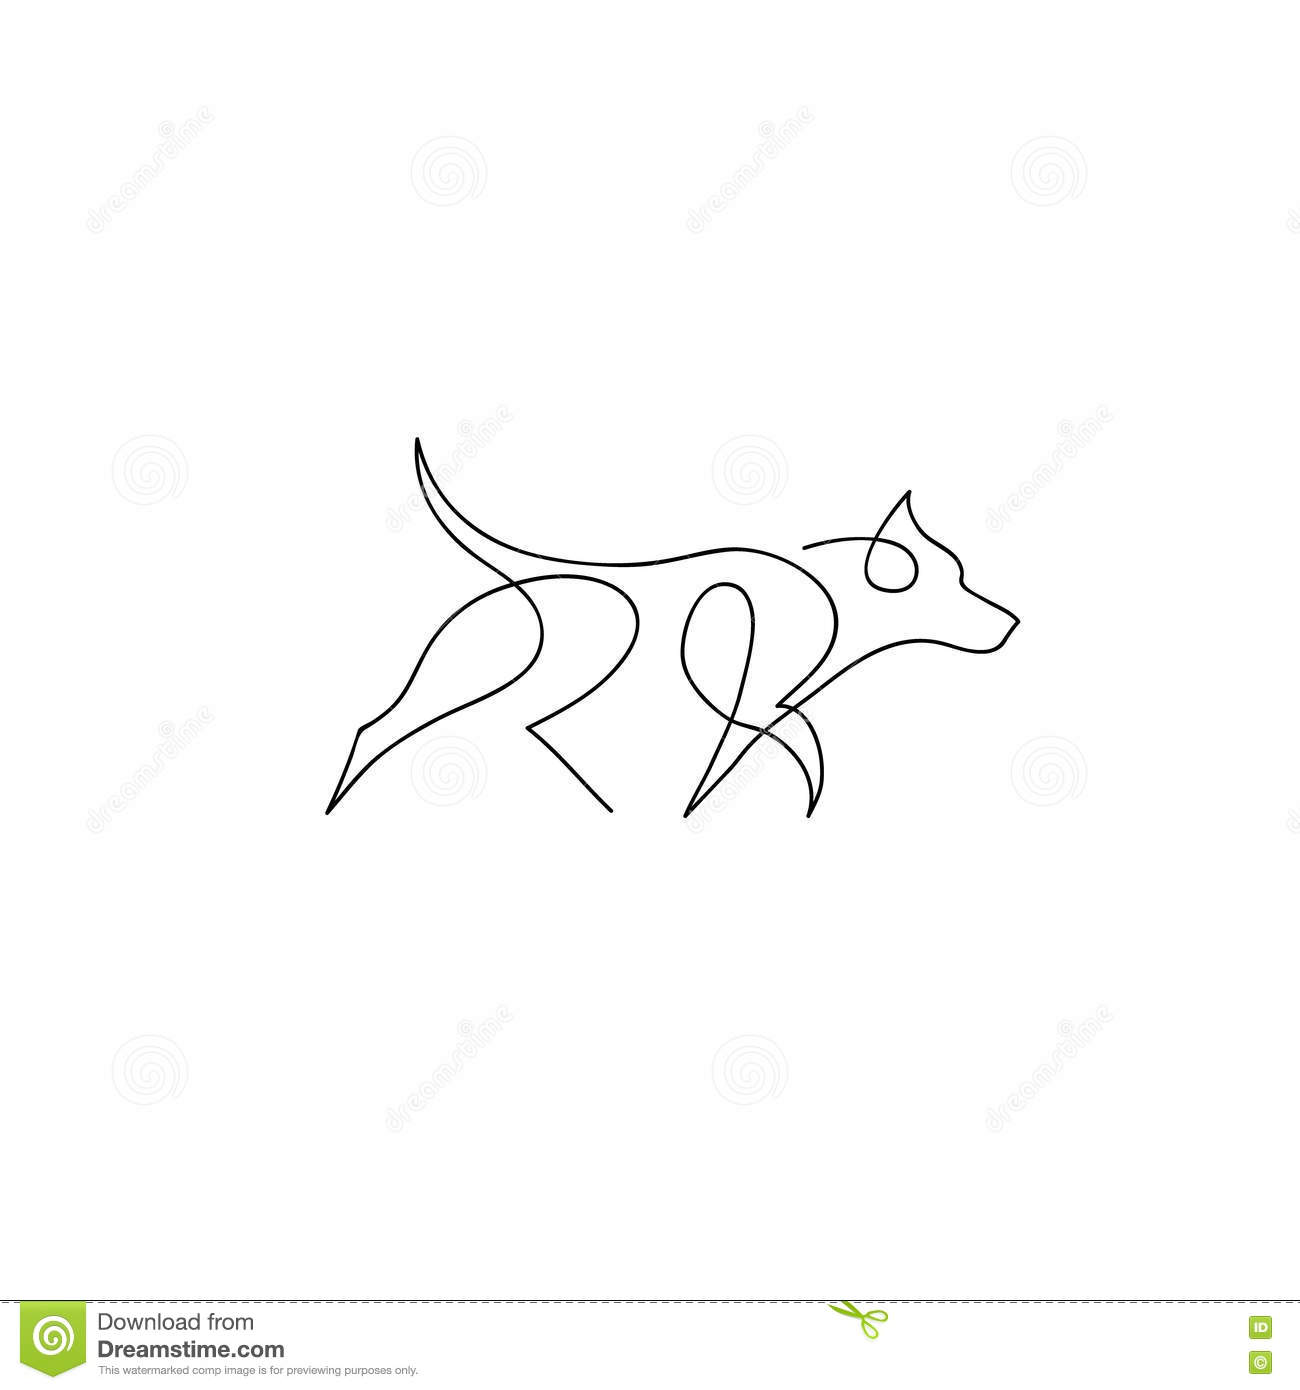 One Line Drawings Of Animals : One line dog design silhouette german shepherd hand